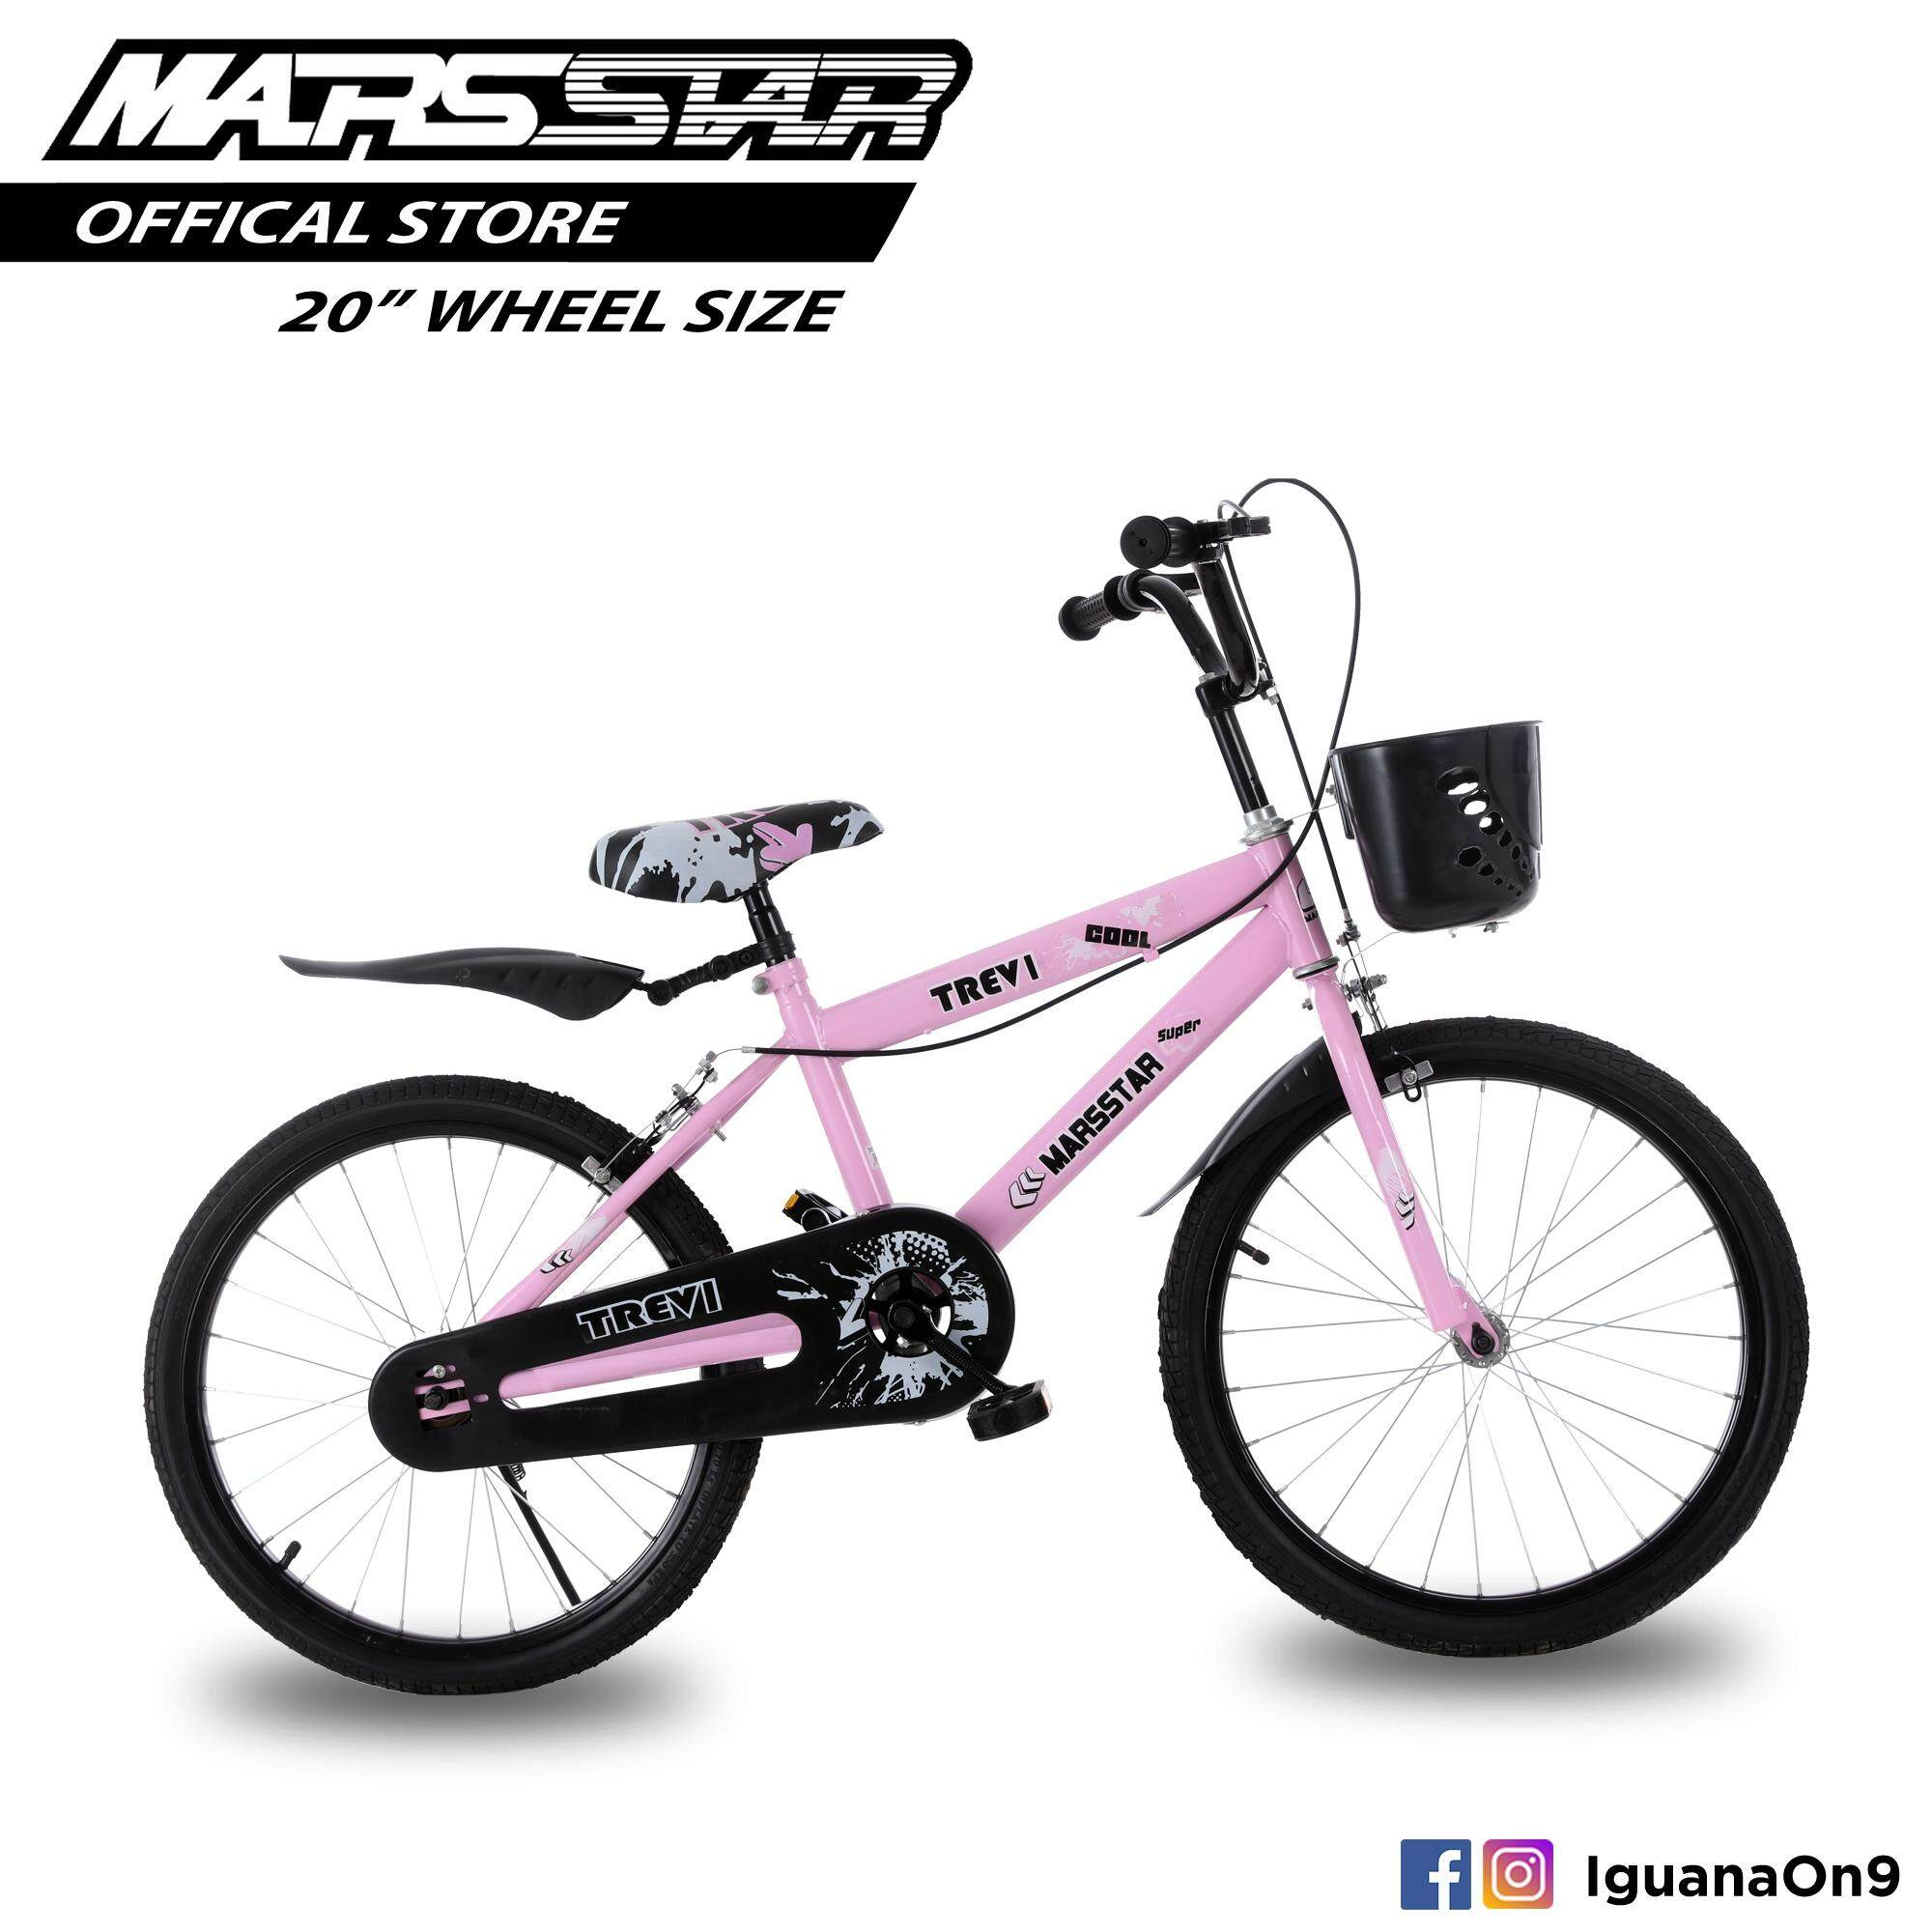 Mountain Bikes For The Best Price At Lazada Malaysia Frame Mosso 669 Xc Pro Marsstar 2001 Trevi 20 Inch Bicycle With Caliper Brake Pink